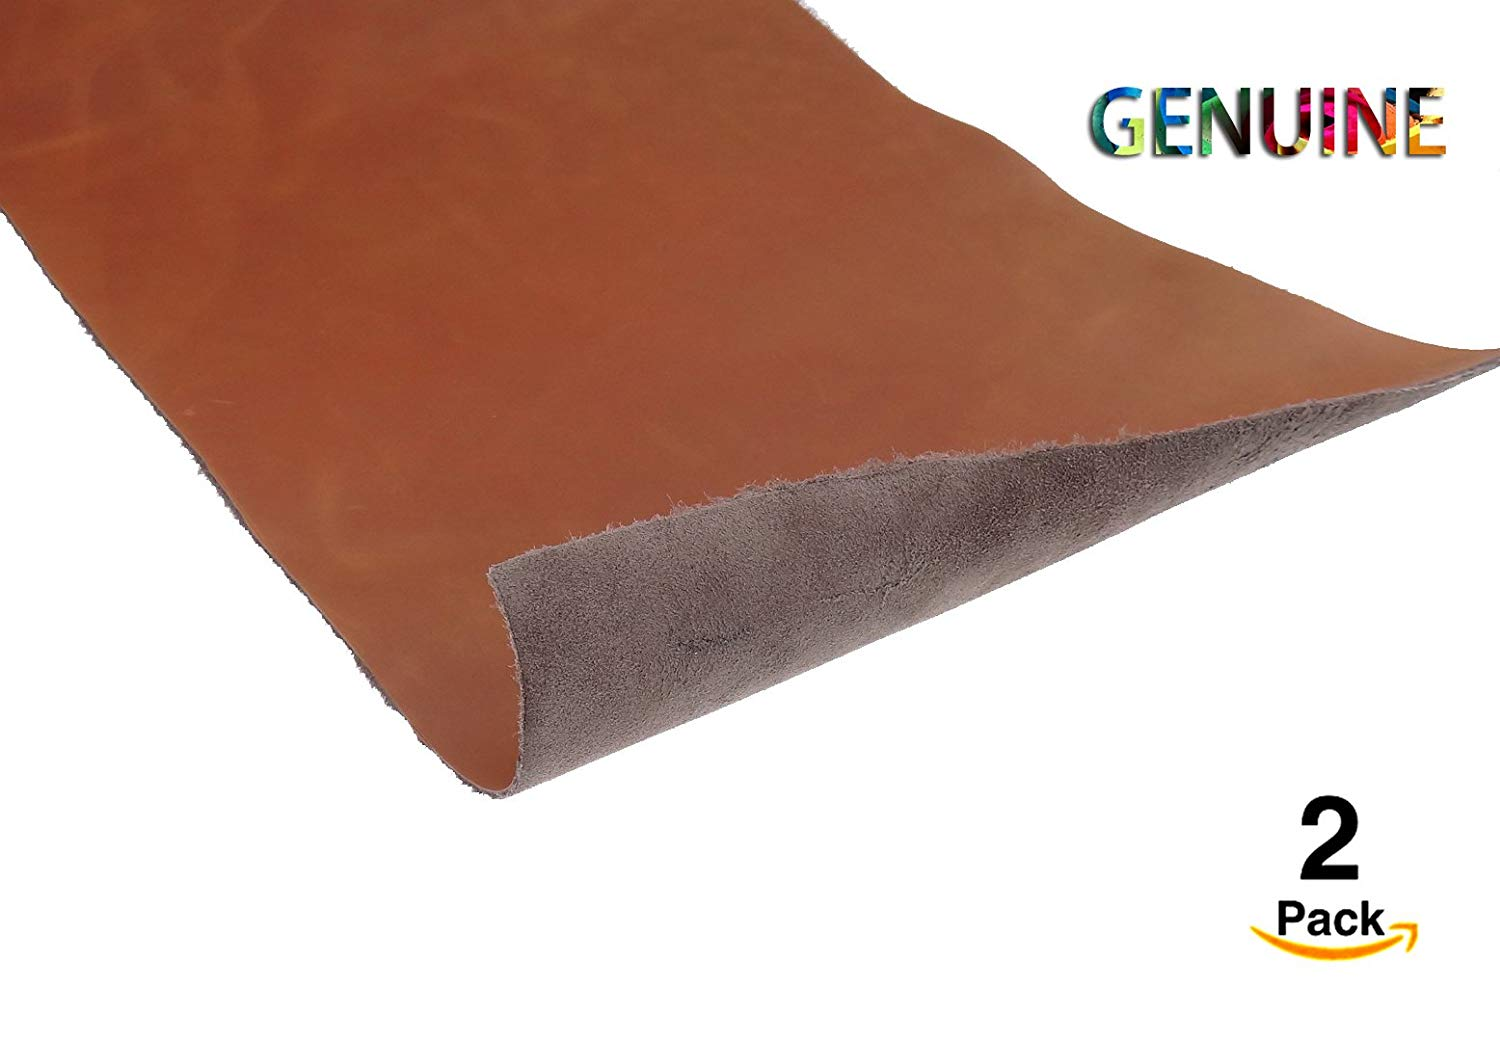 Genuine Cowhide Genuine Cow Leather Genuine Leather Hides Cow Skin Various Colors And Sizes Tooling Leather Shapes Leathercraft Accessories Supplies Leathercraft (deep tan, 1X0.5 (FOOT)(2PACK))